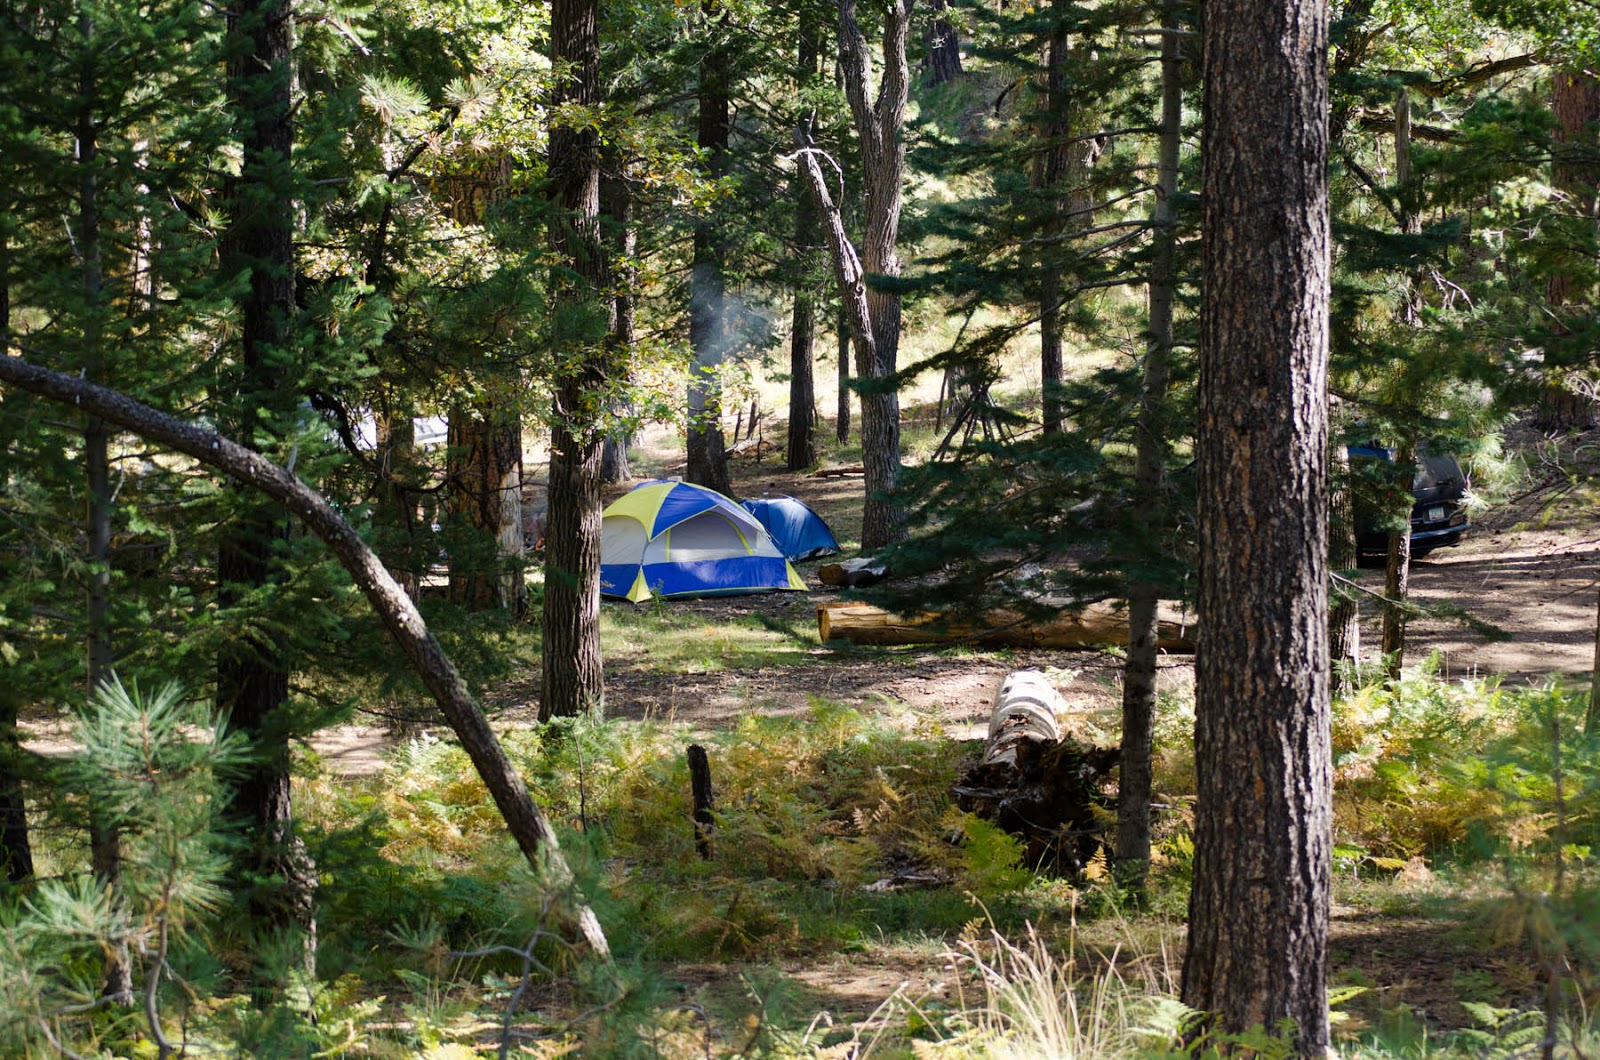 Camping on the Mogollon Rim